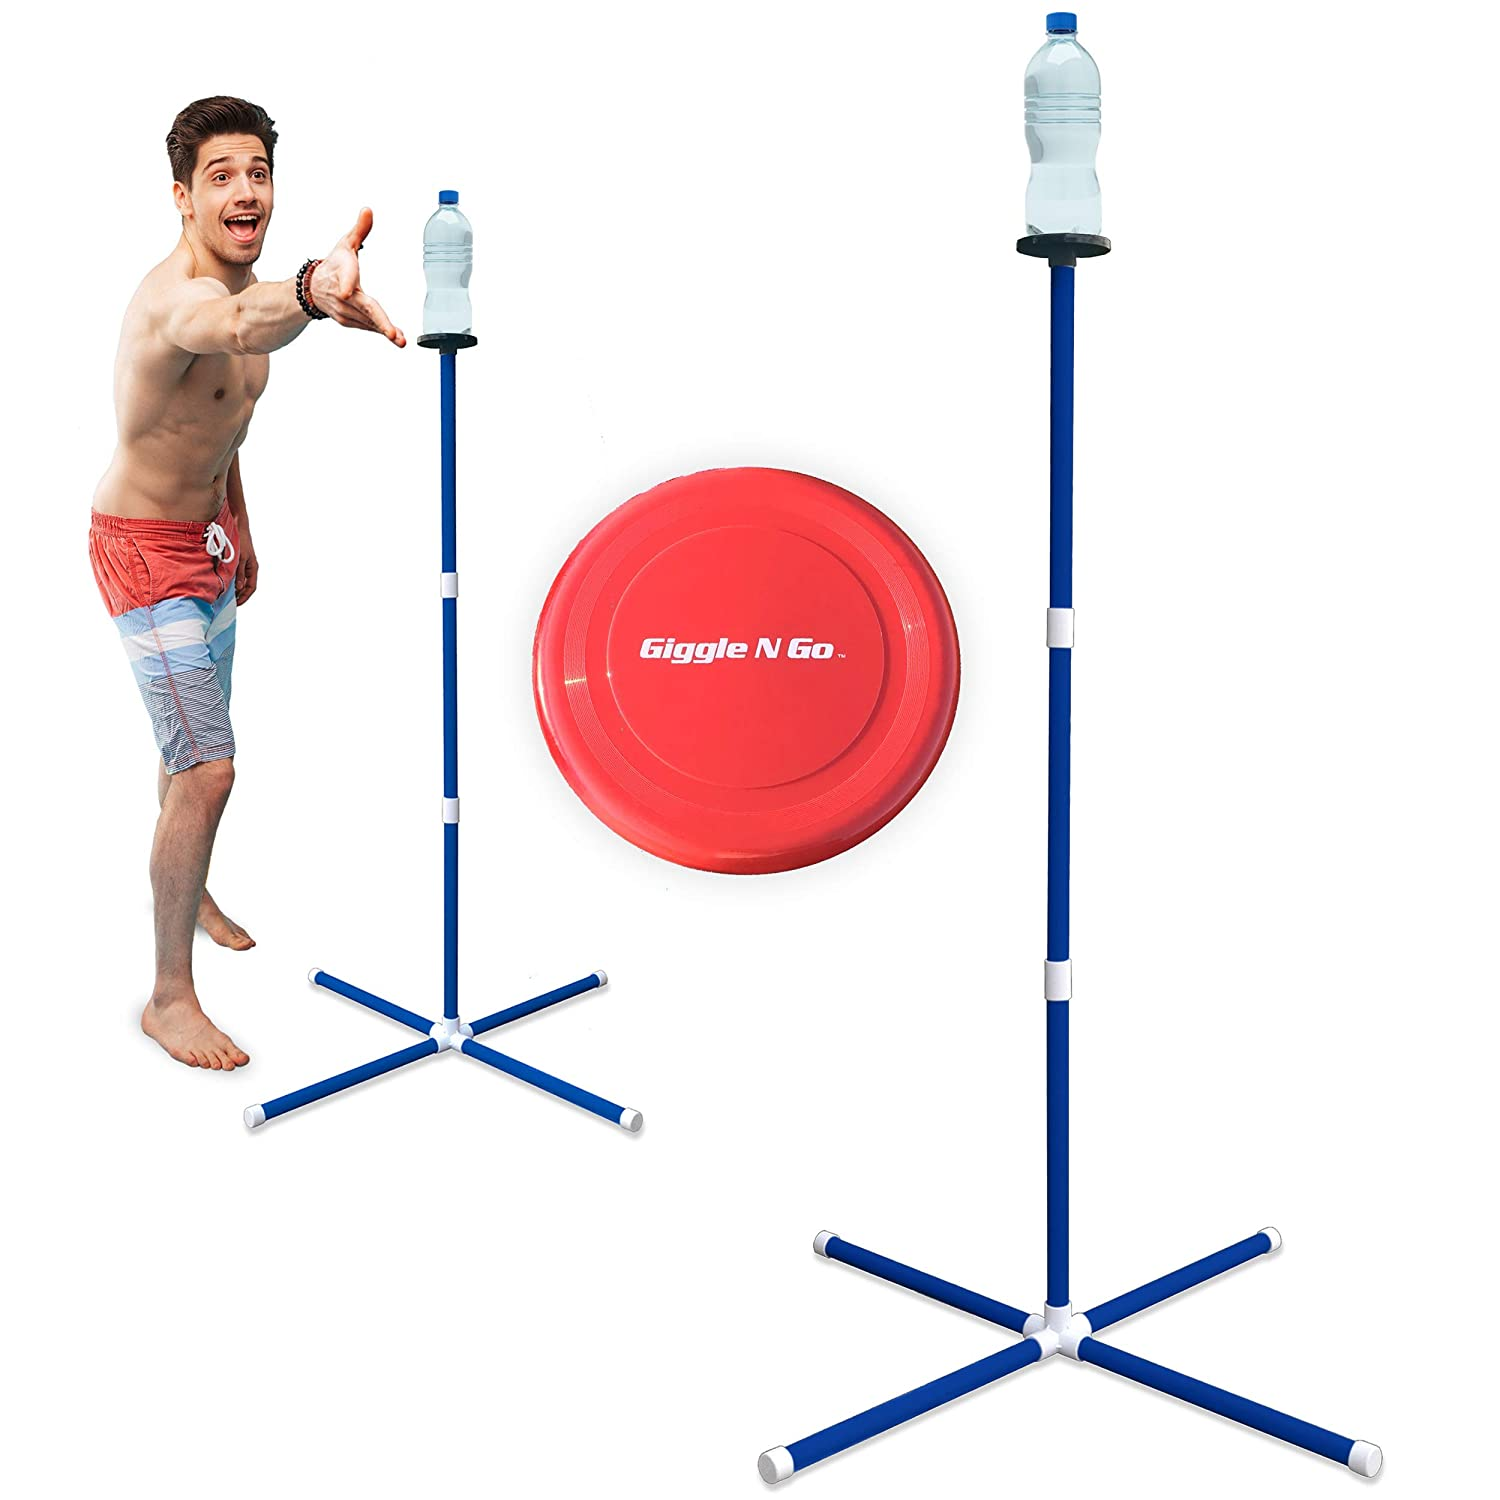 GIGGLE N GO Knock Off Toss Outdoor Games - Yard Games for...